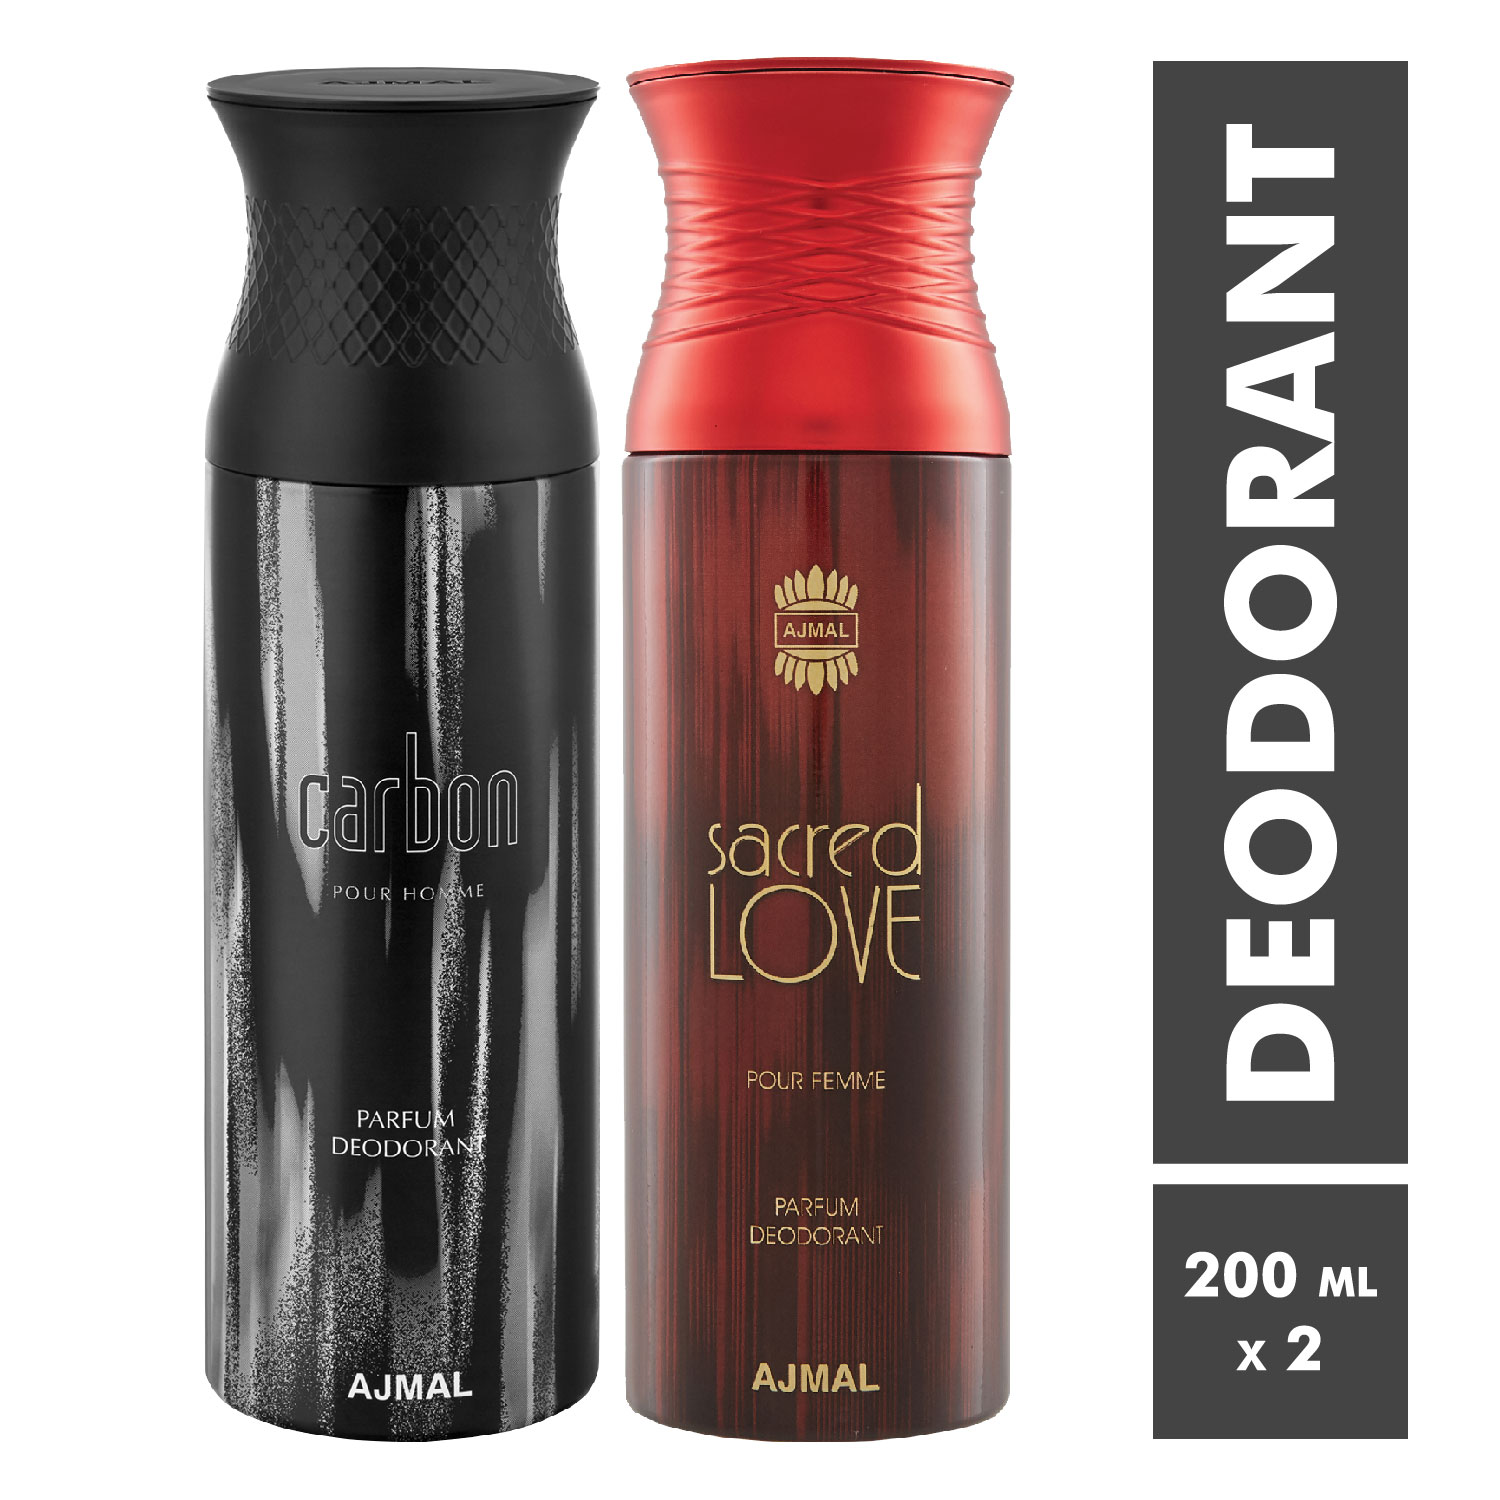 Ajmal | Carbon Homme and Sacred Love Deodorant Spray - Pack of 2